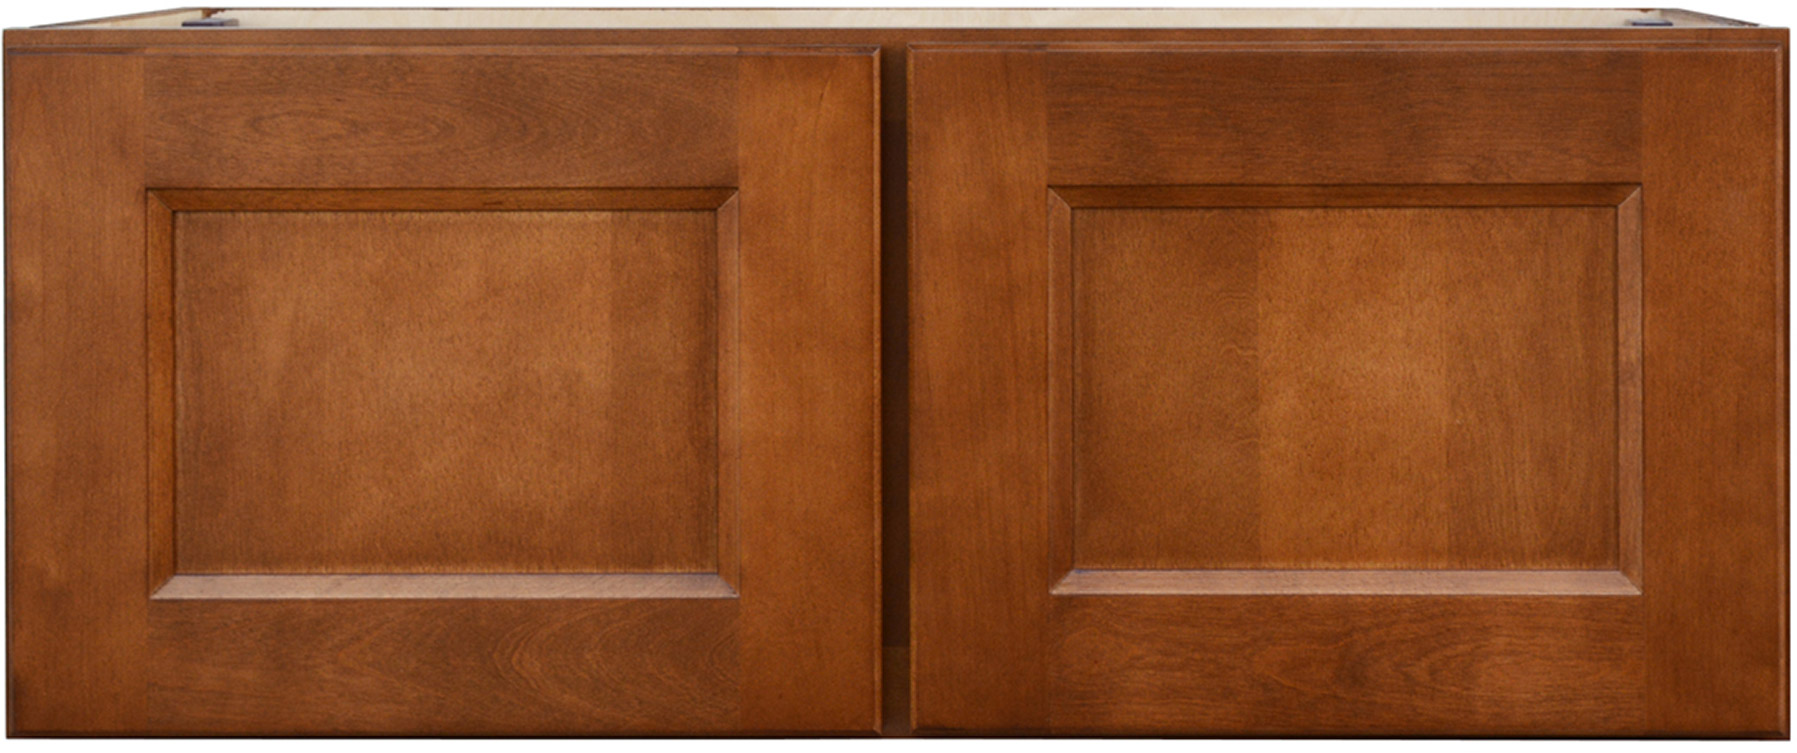 Sunnywood Kitchen Cabinets Amber Spice Kitchen Cabinets  Rta Cabinet Store